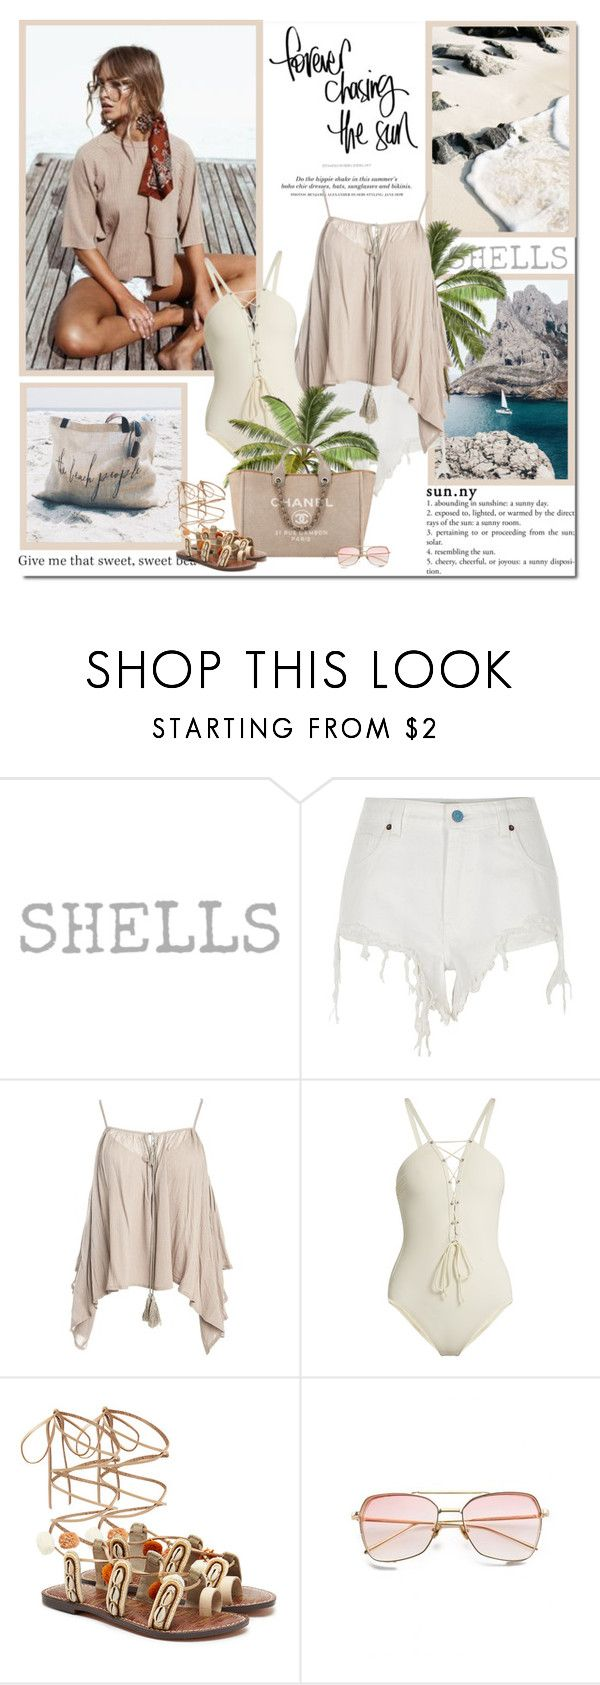 """""""Summer means happy times and good sunshine. It means going to the beach!!"""" by lilly-2711 ❤ liked on Polyvore featuring River Island, H&M, Sans Souci, Zeus+Dione, The Beach People and Sam Edelman"""